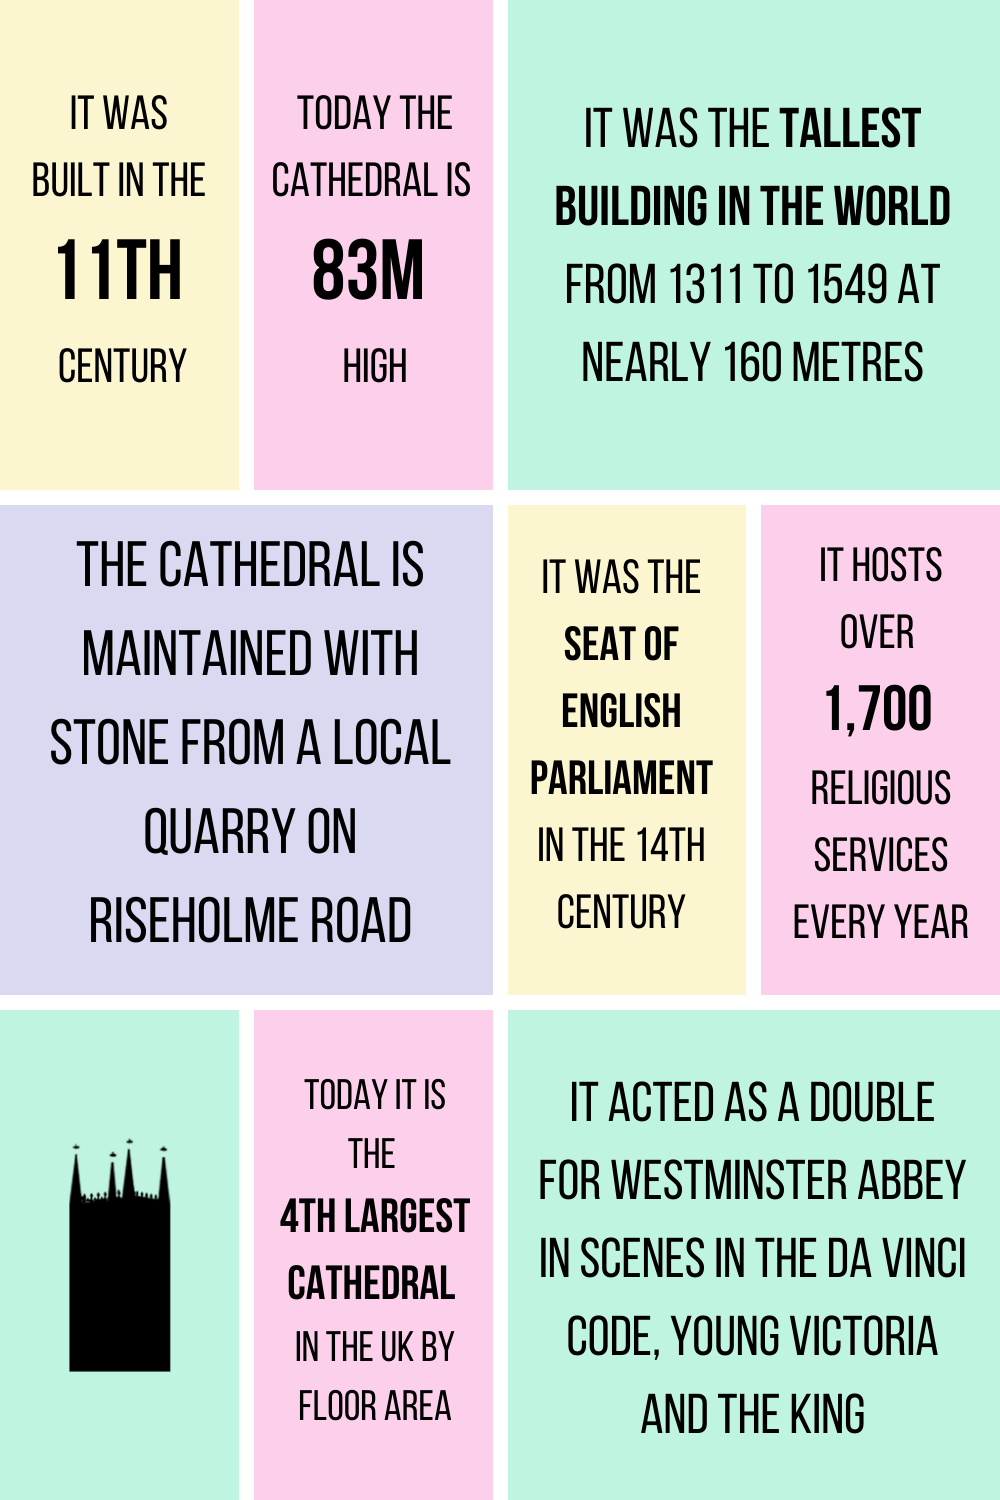 Lincoln Cathedral facts at a glance